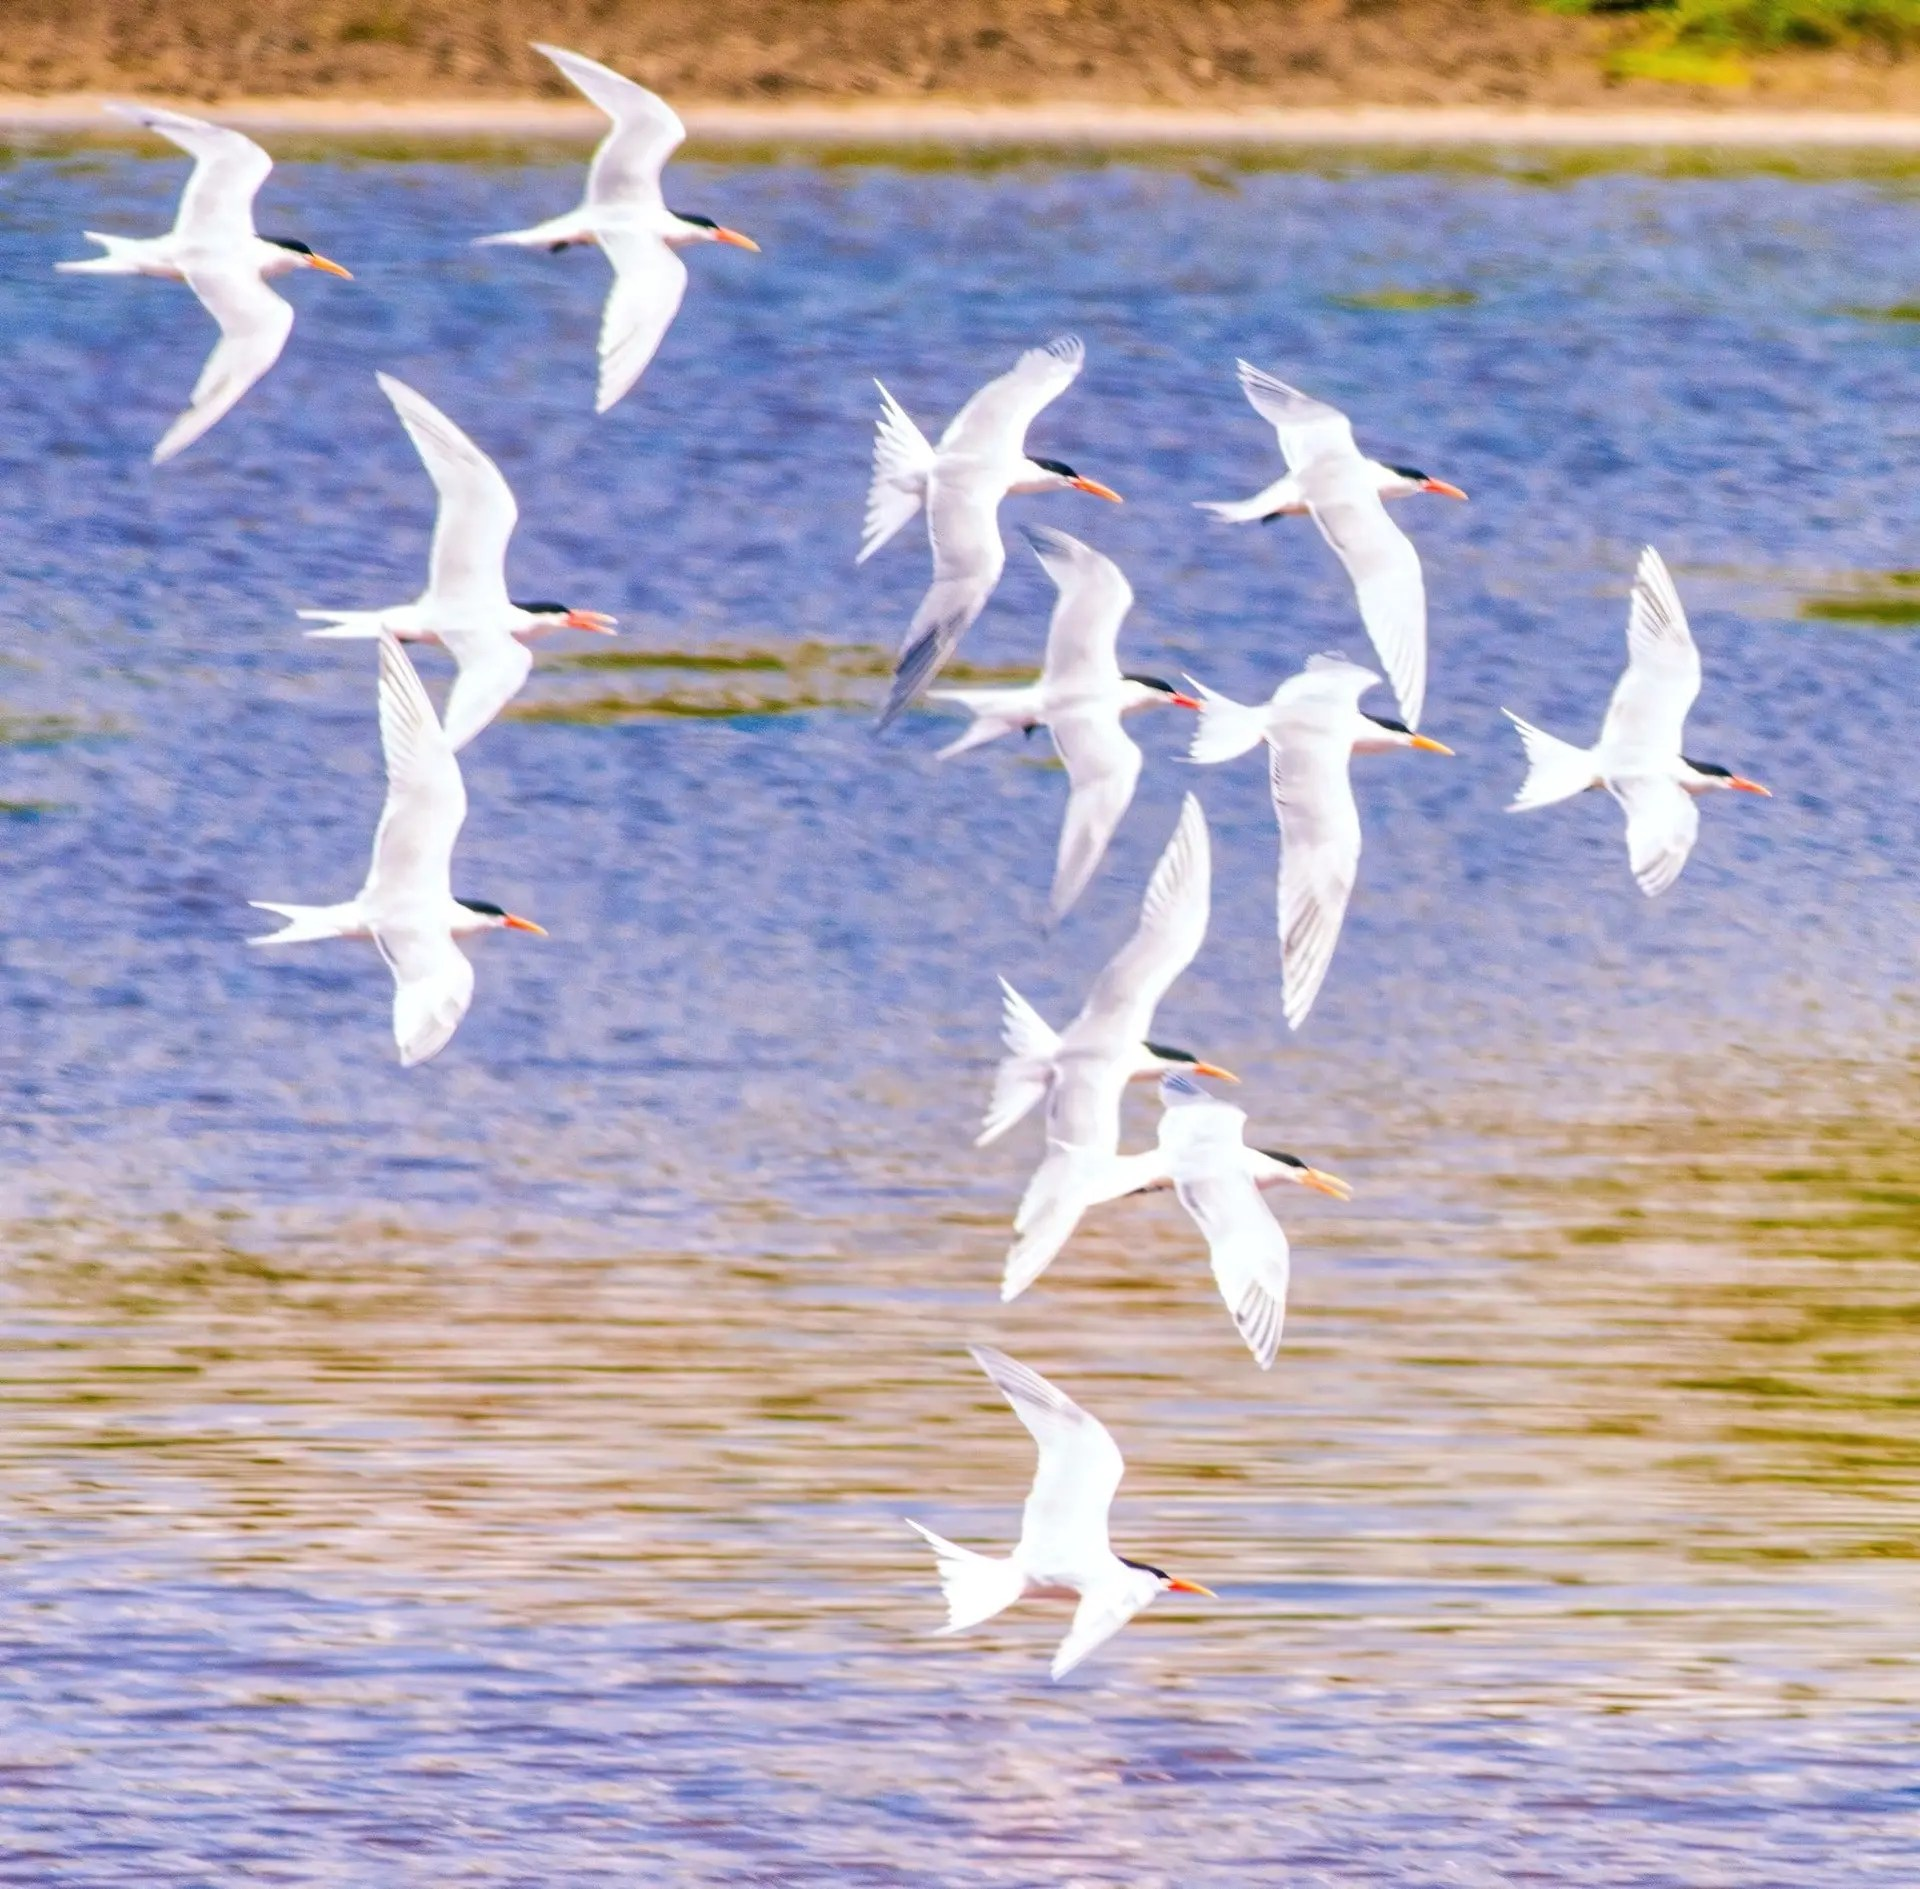 Terrance Rodgers - Royal Terns at San Elijo Lagoon